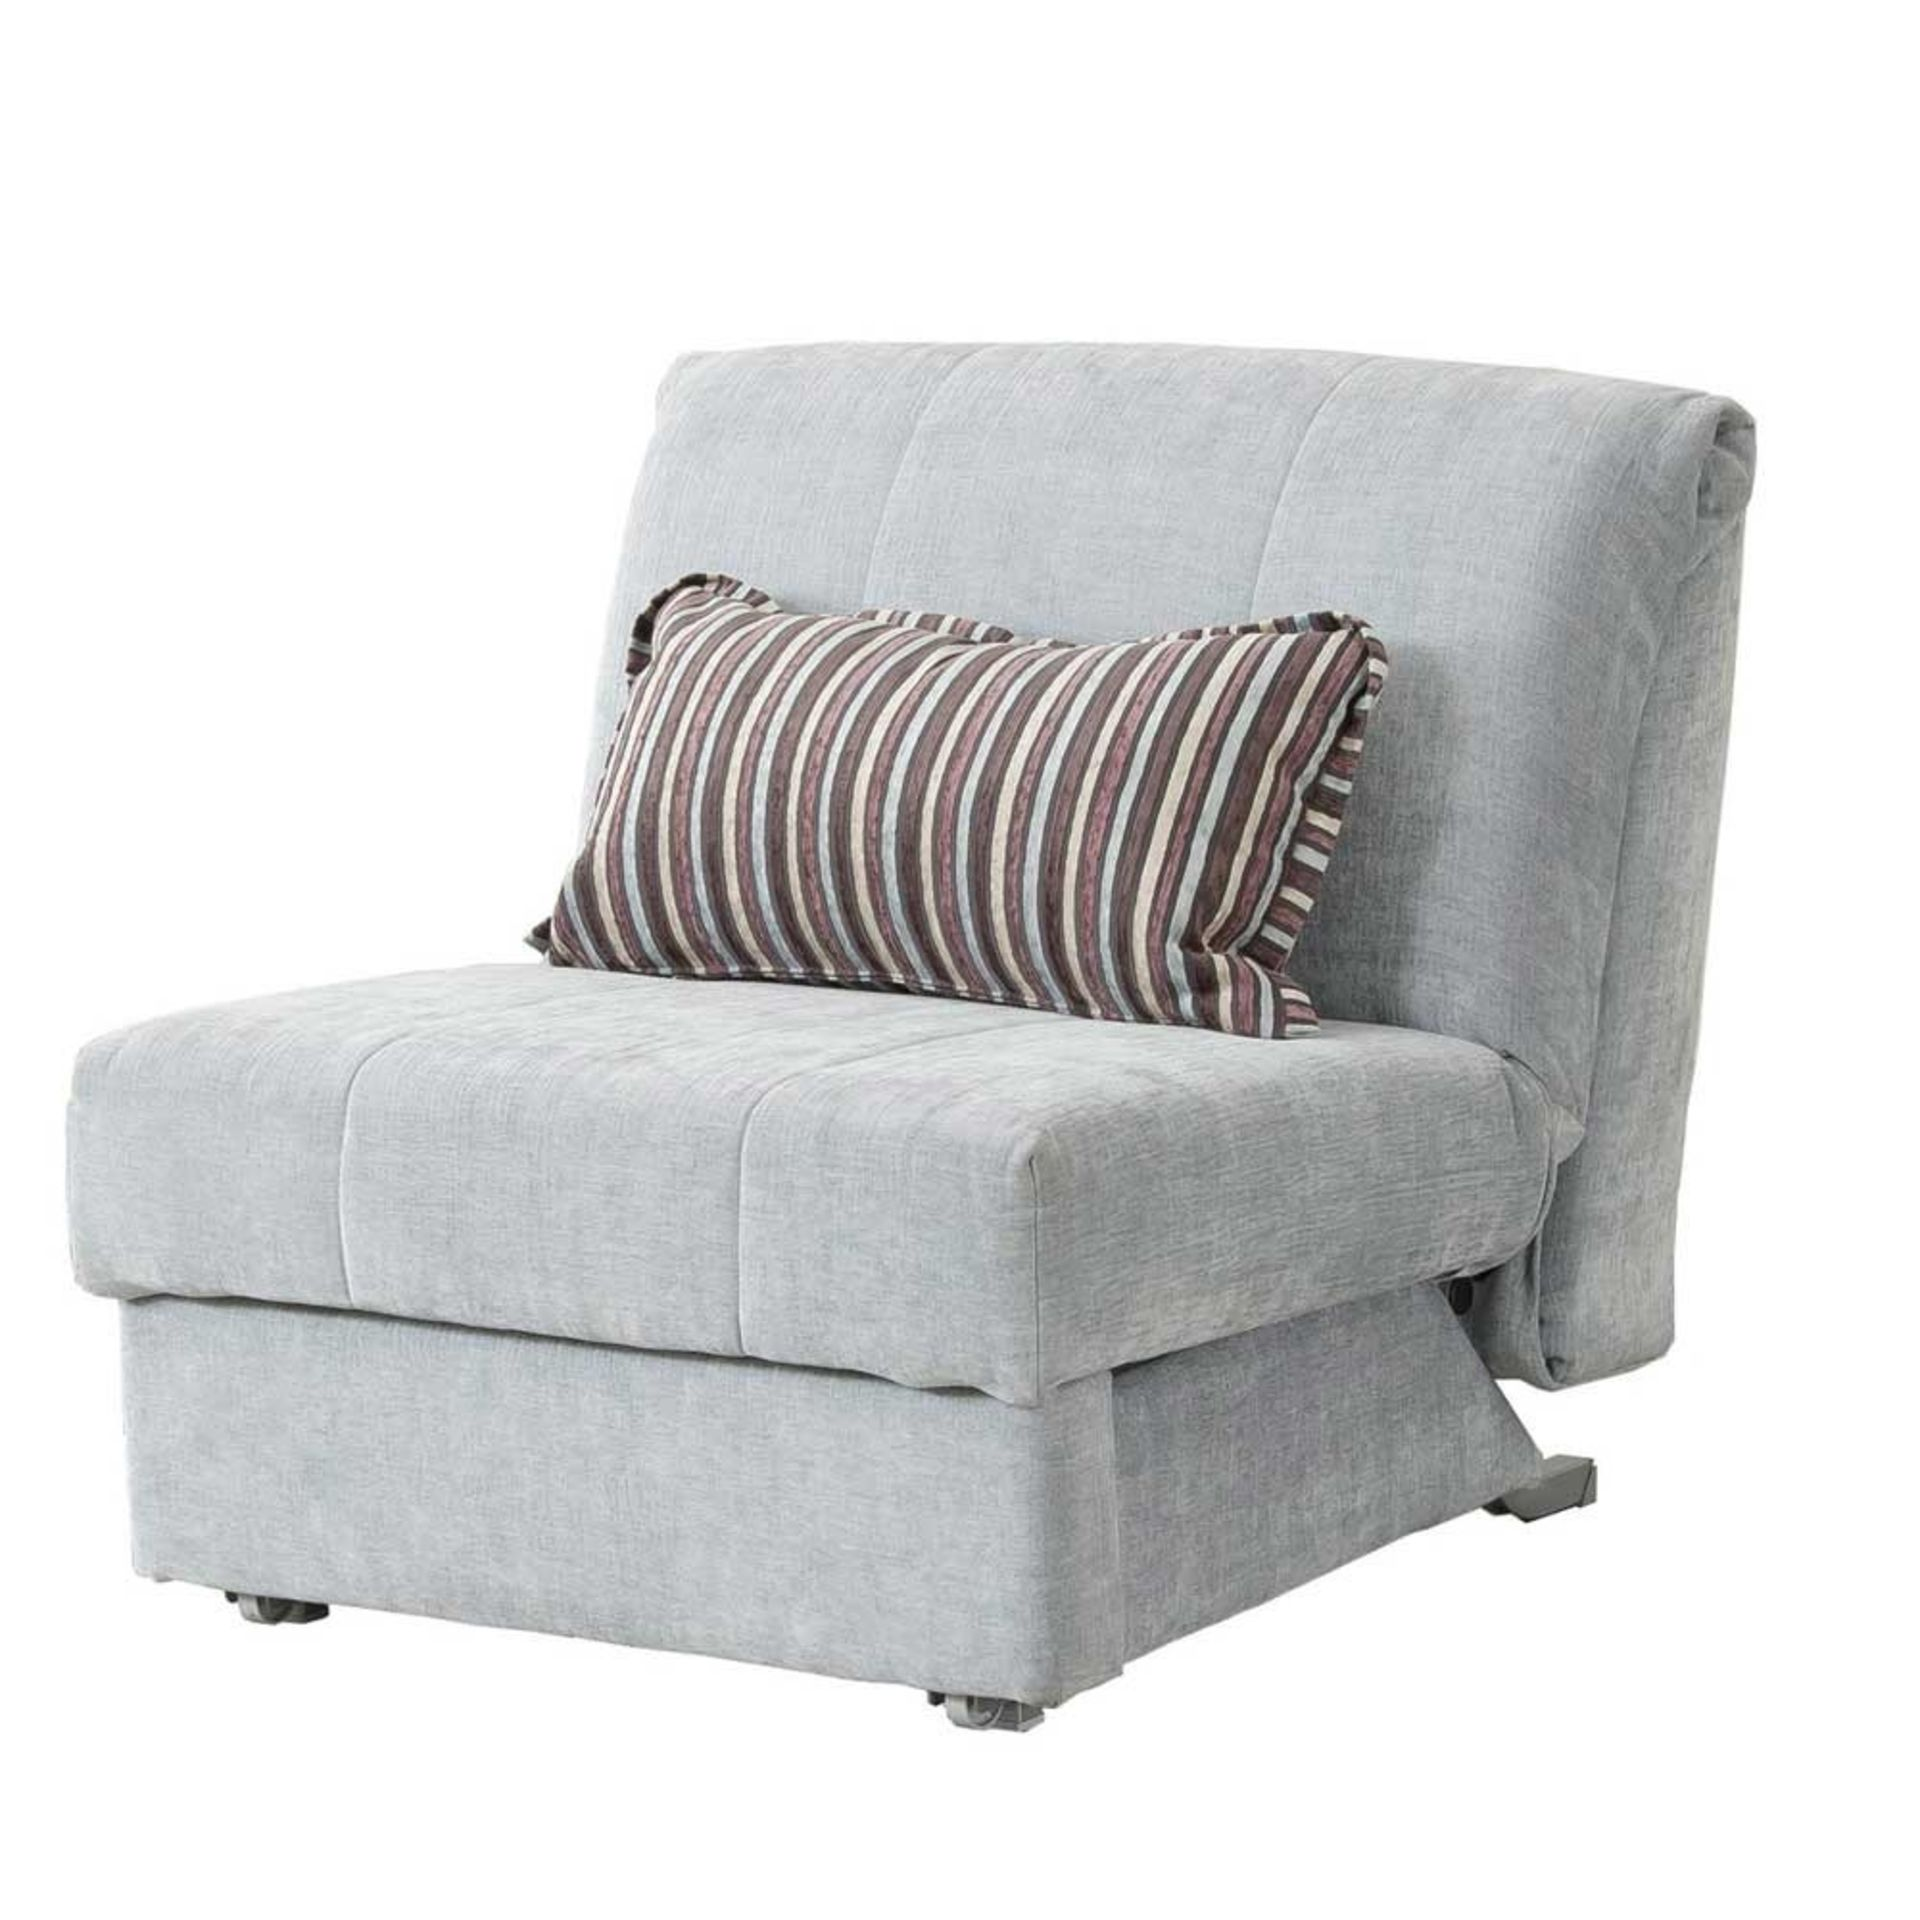 Metz Sofa 80cm Berwick Megan Nature Upholstered The Metz collection is ideal even for smaller